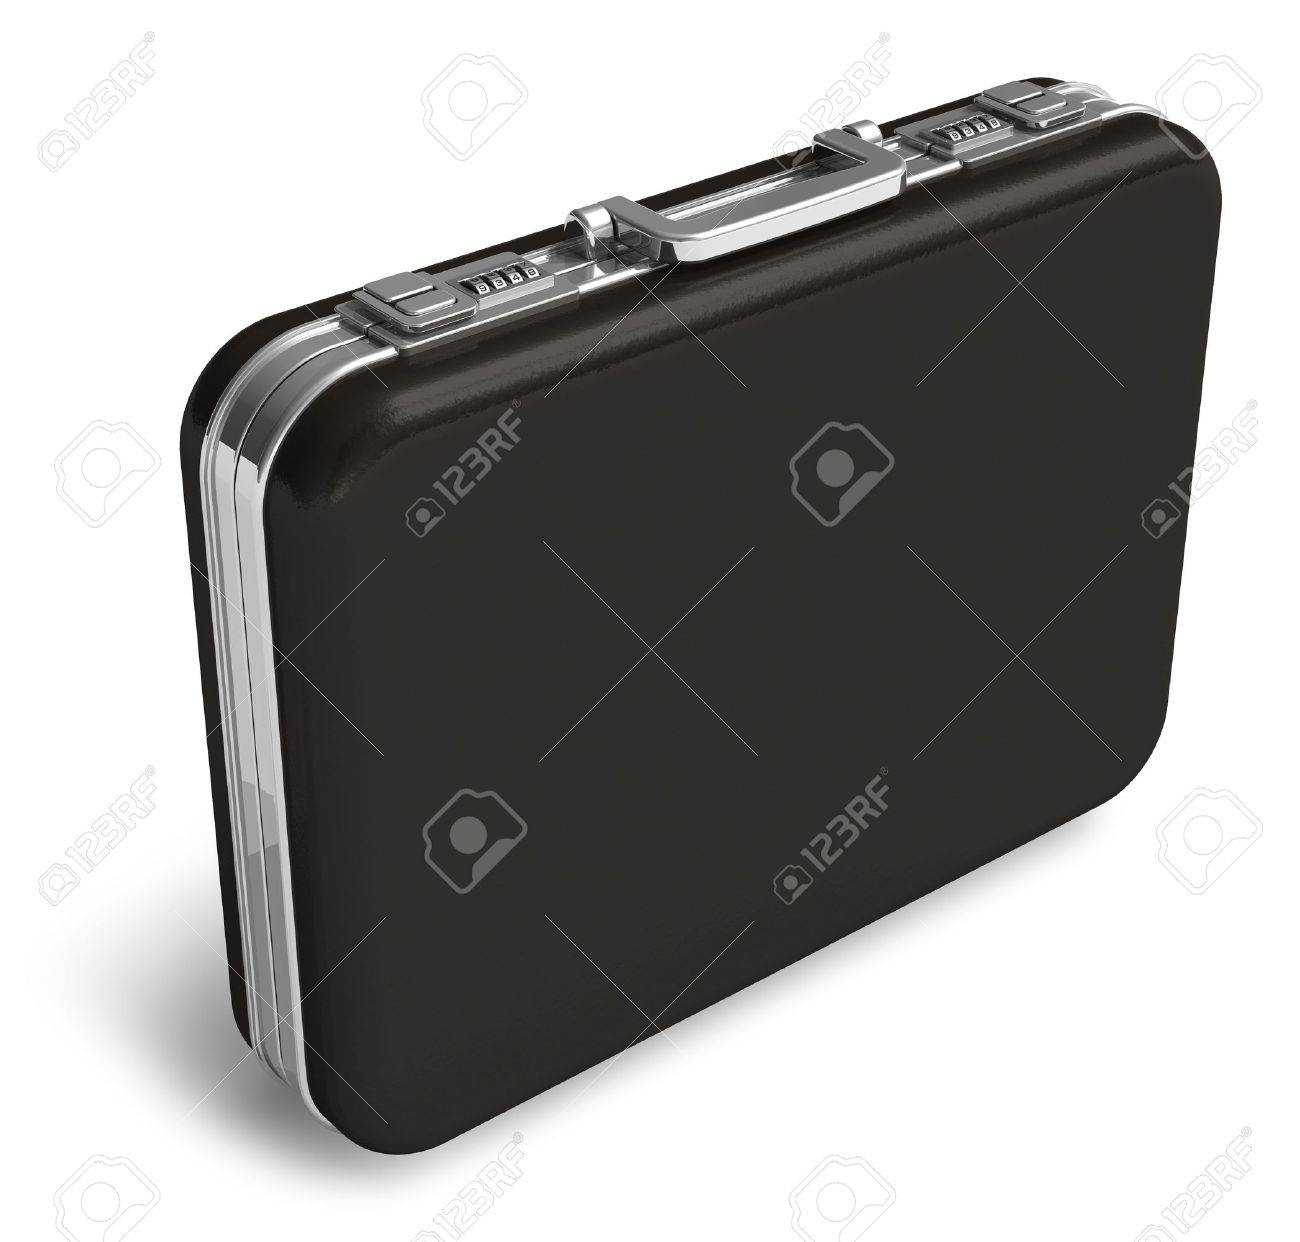 Black Leather Suitcase Isolated On White Background Stock Photo ...